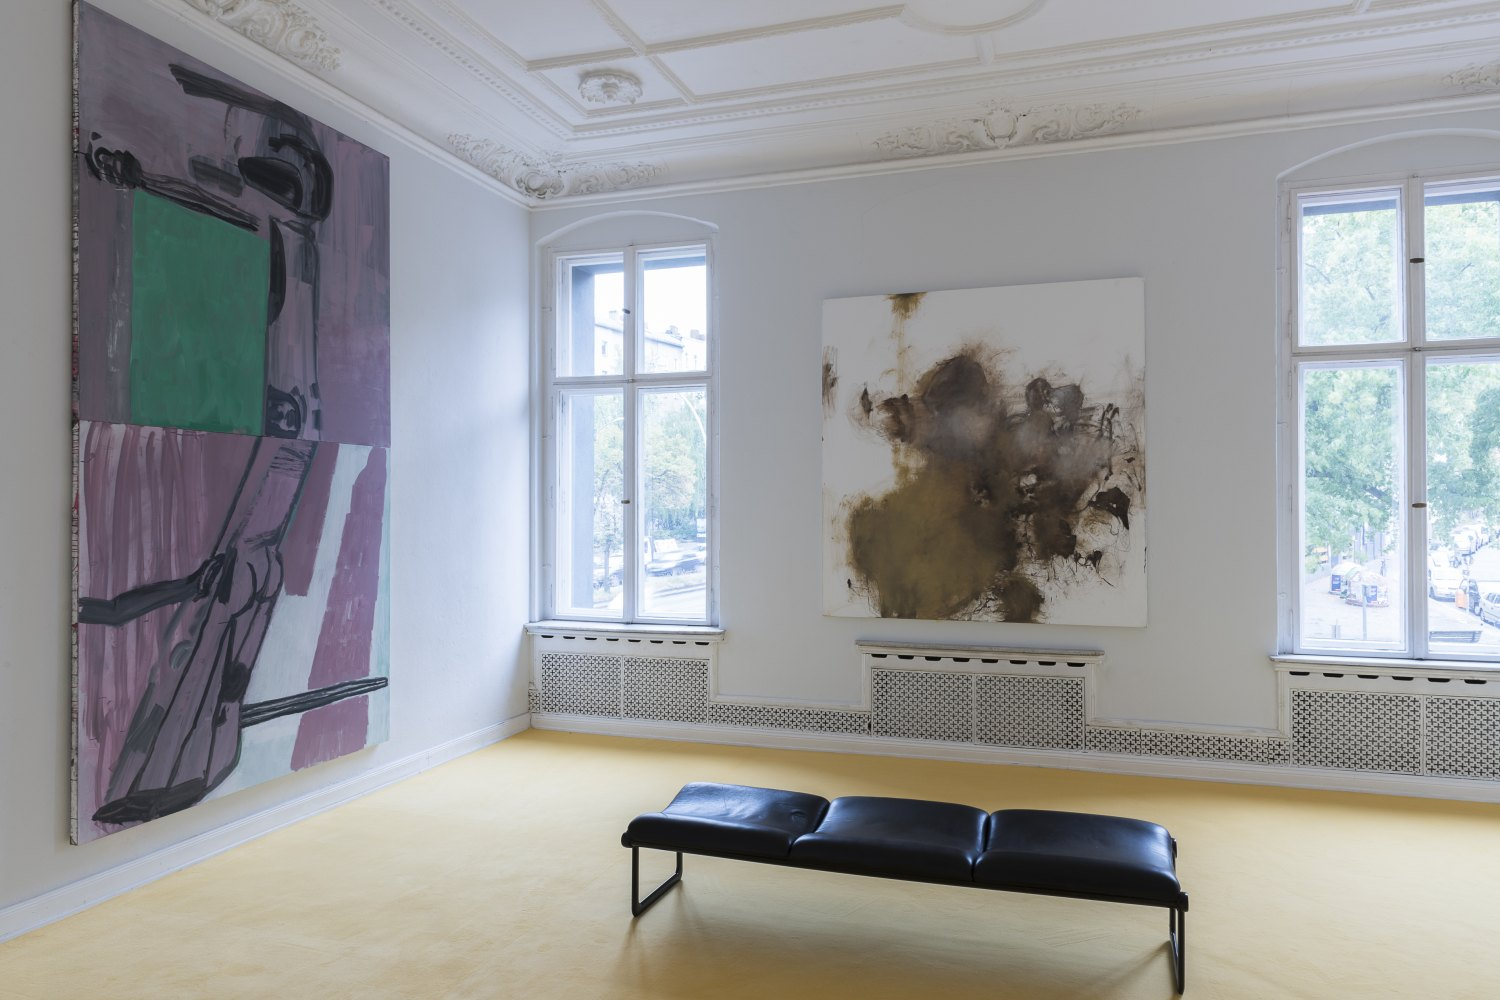 The Vitalist Economy of Painting curated by Isabelle Graw Installation view, Galerie Neu, Berlin, 2018